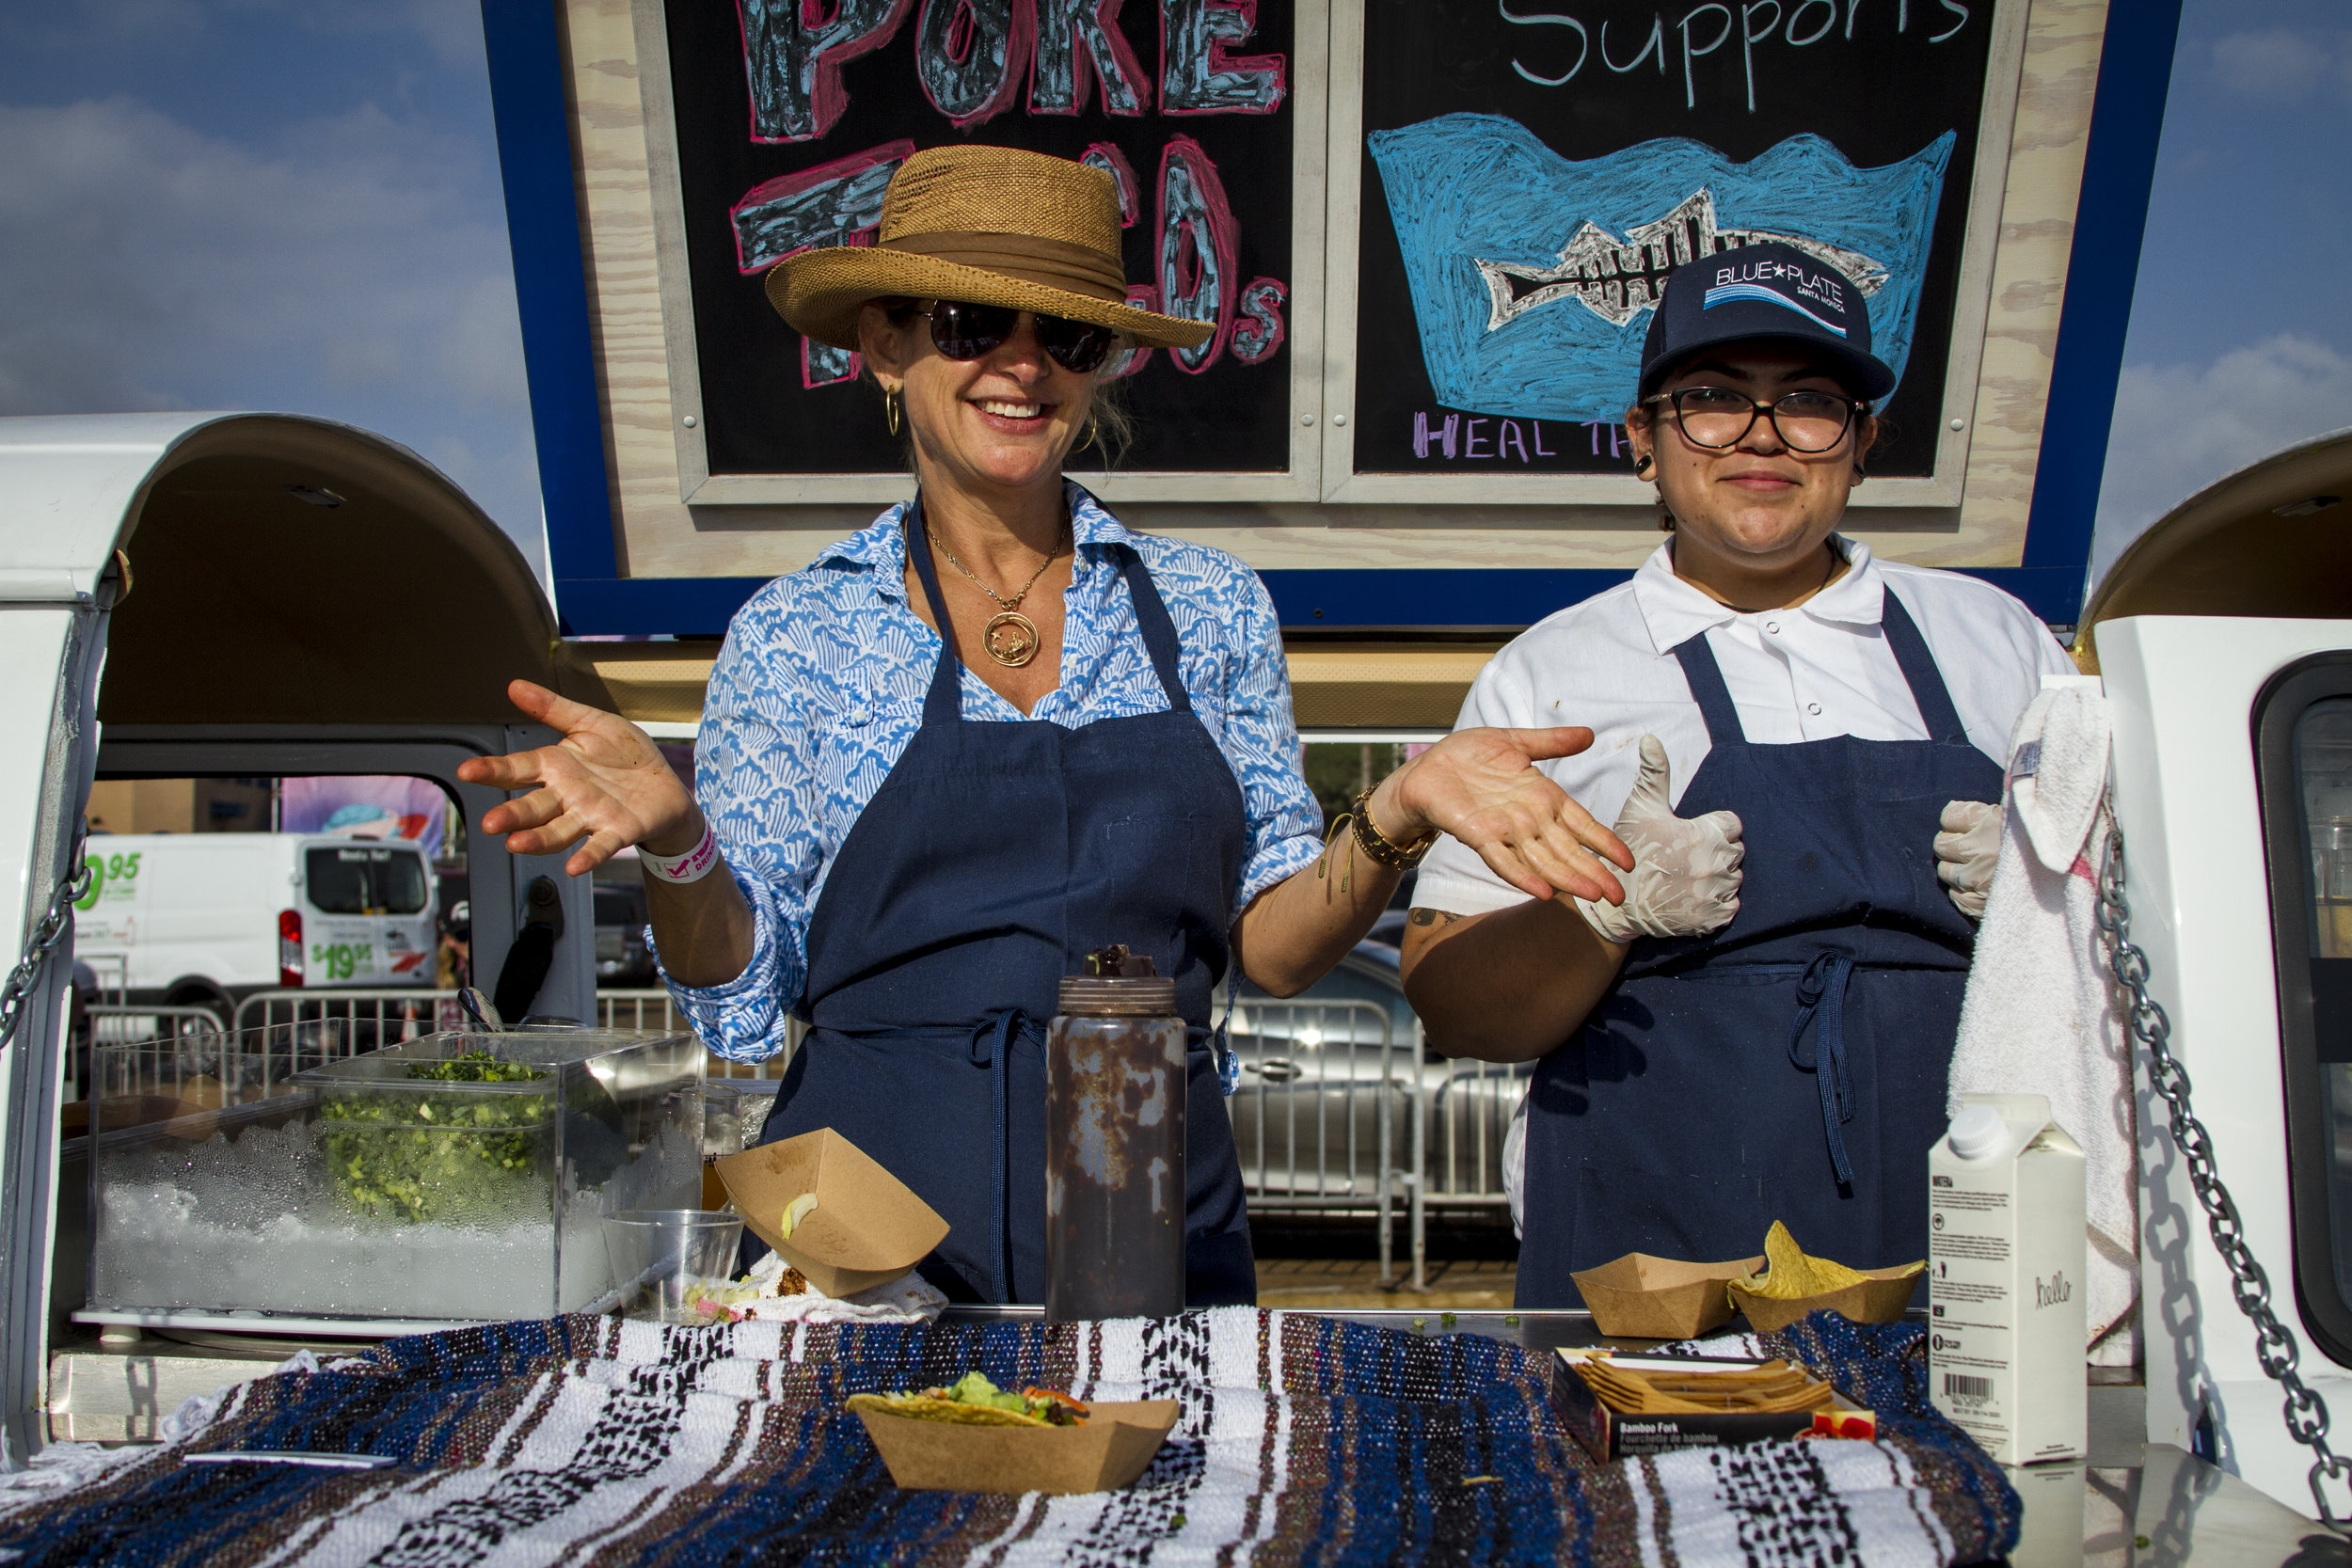 Jennifer Rush (left) and Selenia Melendez (right) hand out ahi tuna taco from their mobile van. At the Off the Hook Seafood Festival. Oct. 6, 2018. By Yasser Marte.